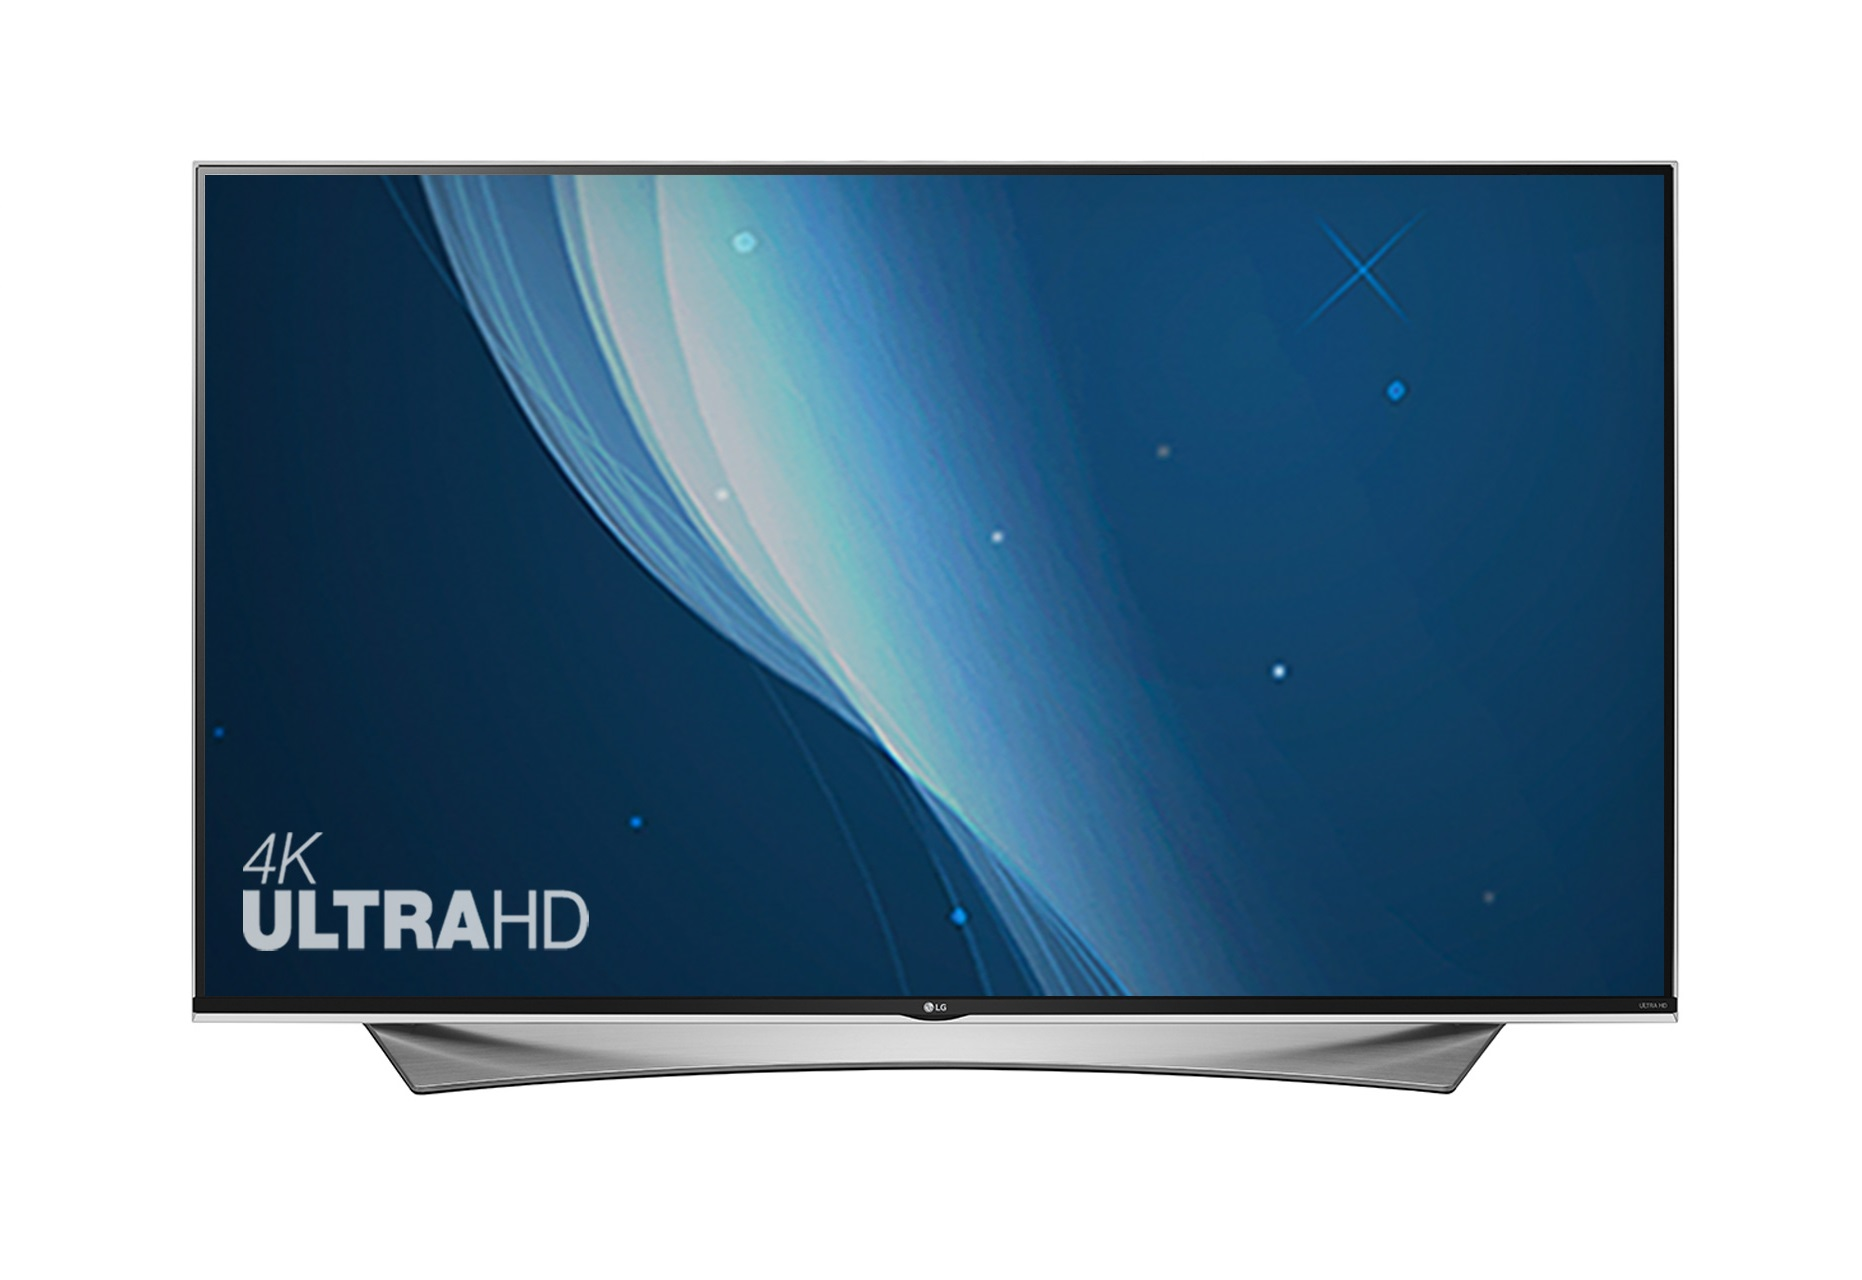 Blaupunkt 55 Inch 4k Ultra Hd Smart Tv Bp5500au9000 Manual